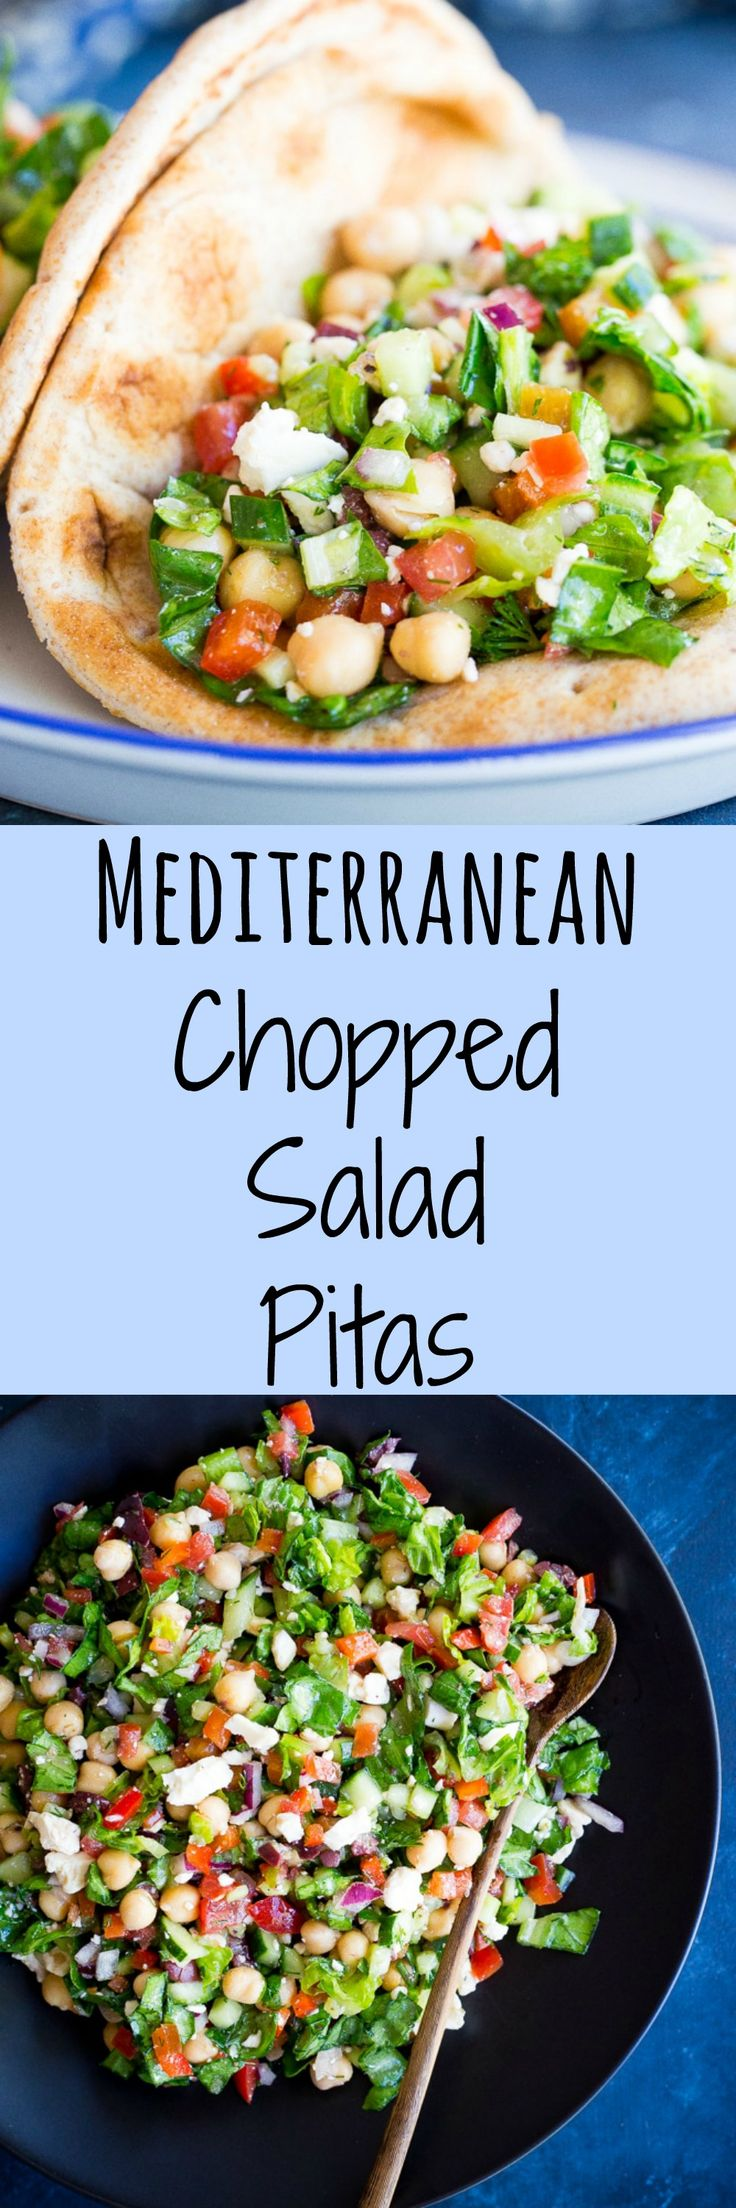 These Mediterranean Chopped Salad Pitas are perfect for a quick, easy and healthy lunch that requires no cooking at all!  Vegetarian, Gluten free option